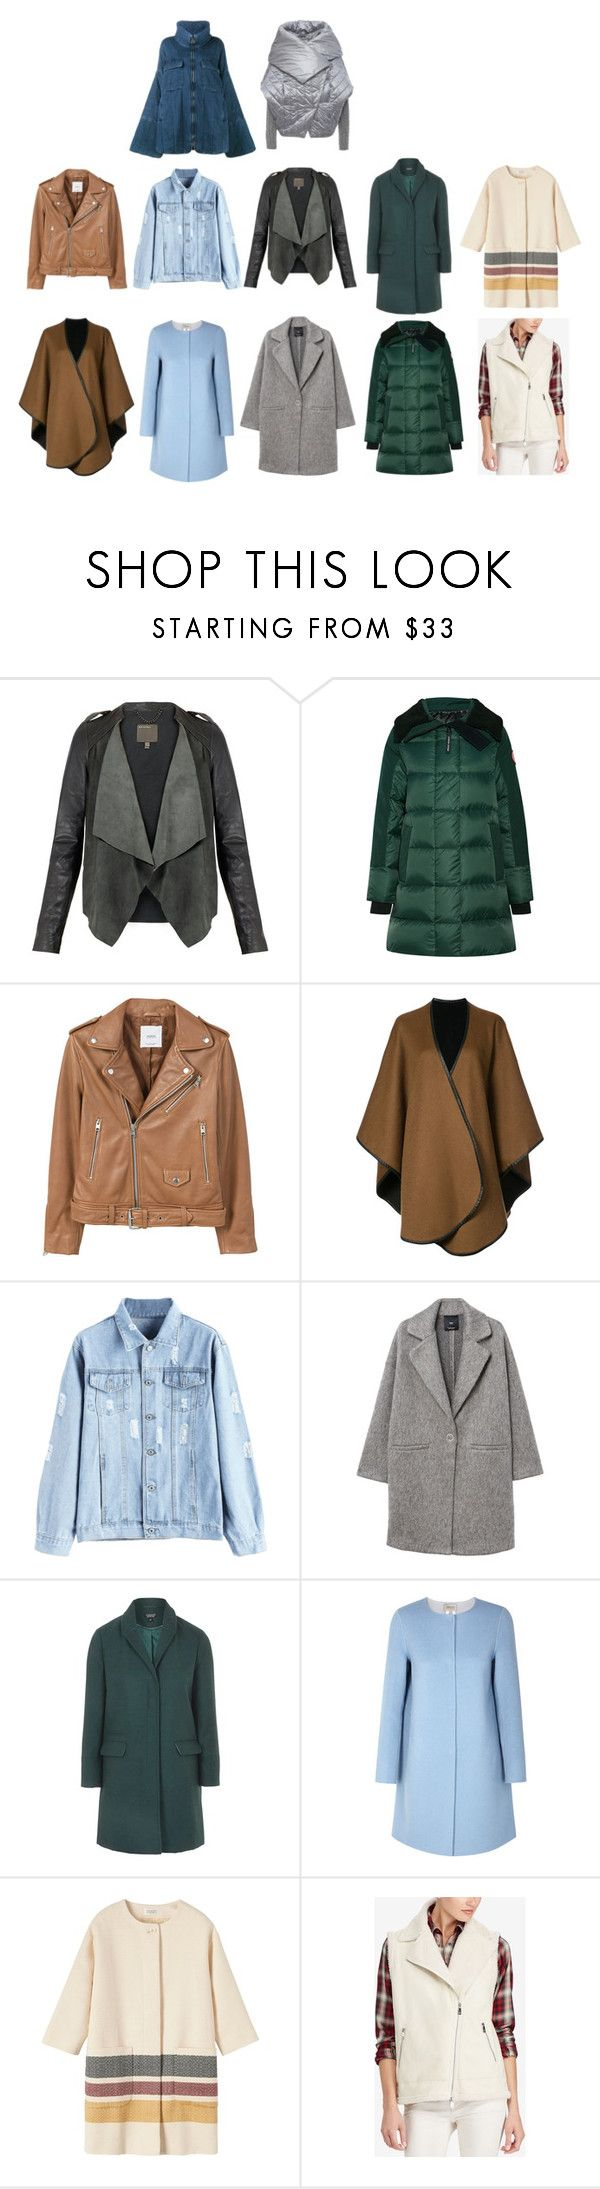 """Без названия #743"" by cute-and-red ❤ liked on Polyvore featuring Canada Goose, MANGO, Sofiacashmere, Topshop, Armani Collezioni, Toast, Lauren Ralph Lauren and Chloé"